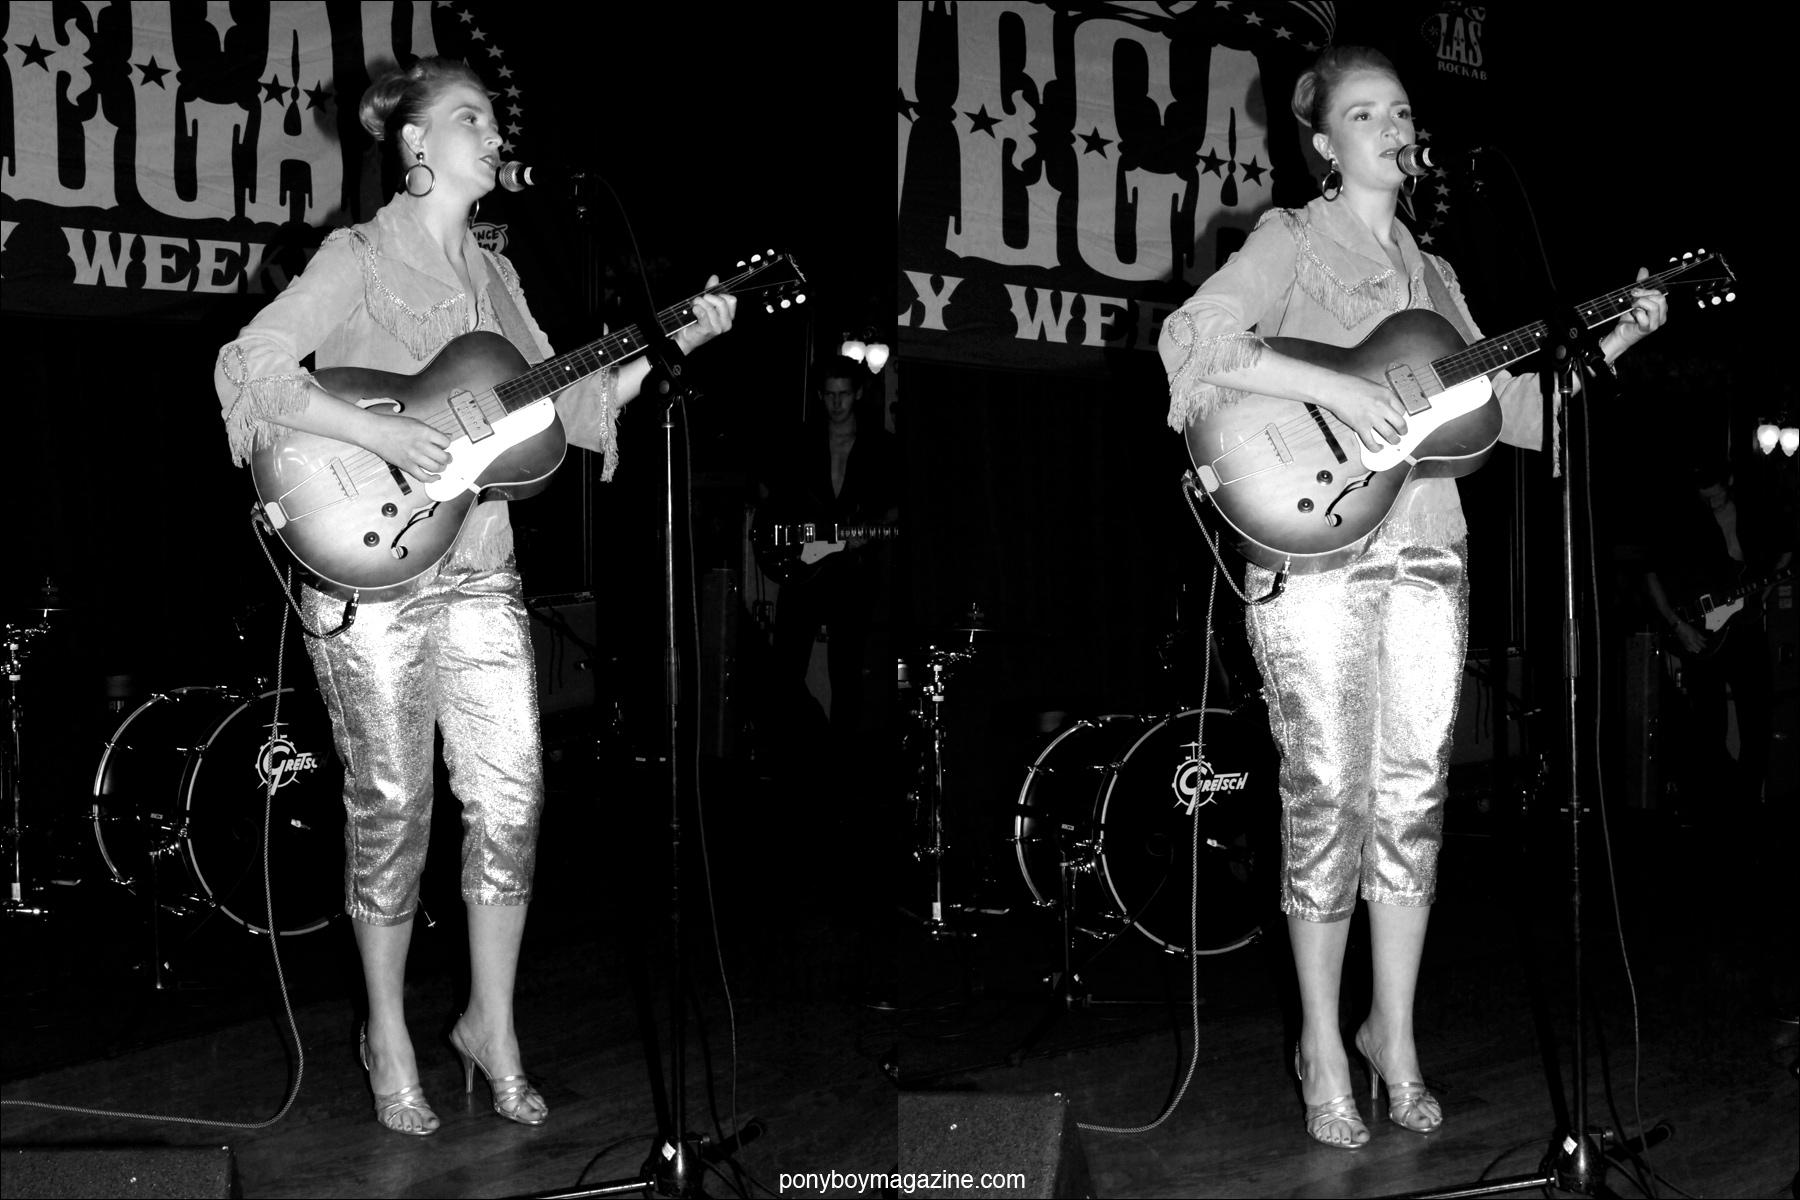 Wild Records musical act Mary Simich photographed at Tom Ingram's Viva Las Vegas 17 rockabilly weekender. Photo by Alexander Thompson for Ponyboy Magazine.